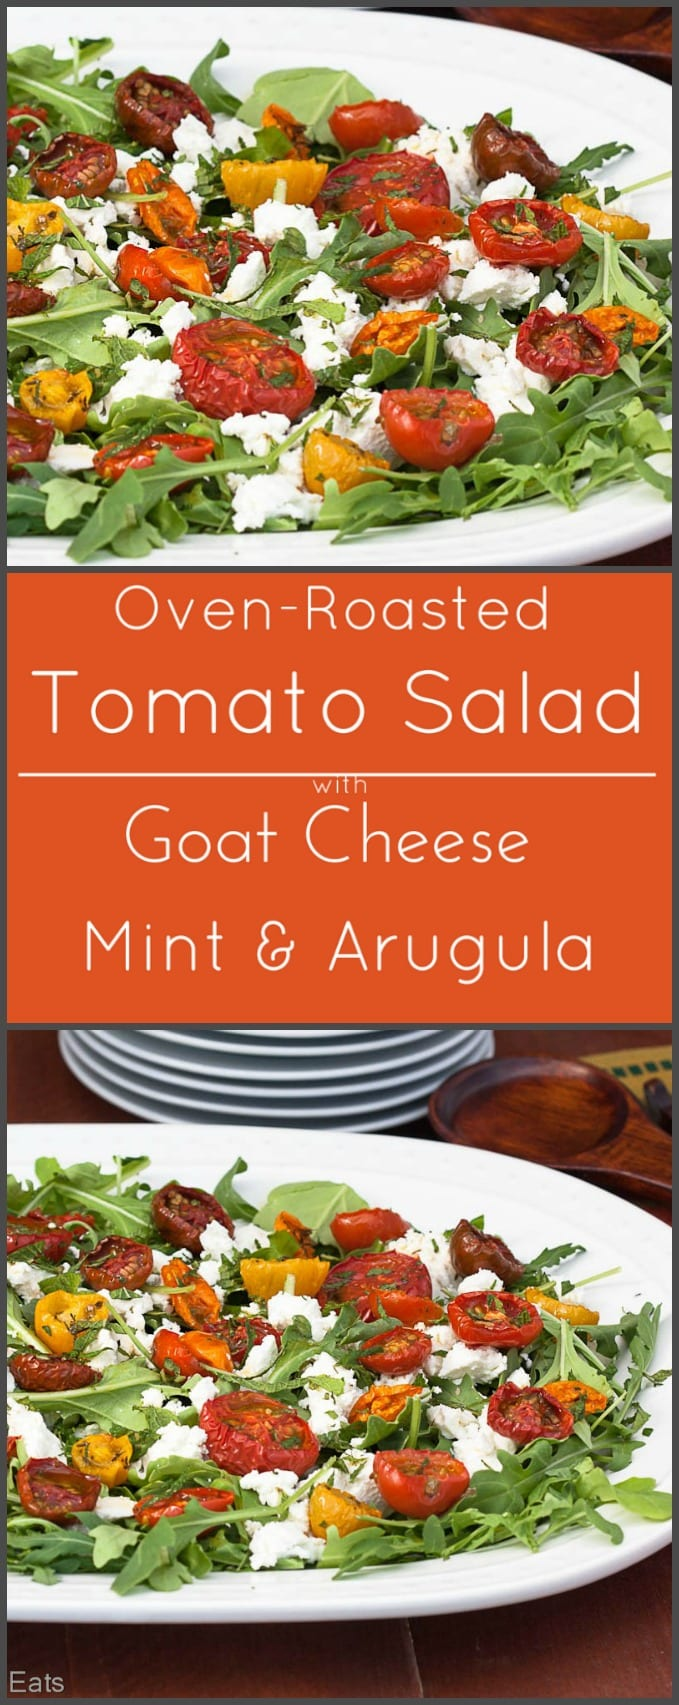 Oven roasted tomato salad with goat cheese, mint and arugula is low carb and gluten free!